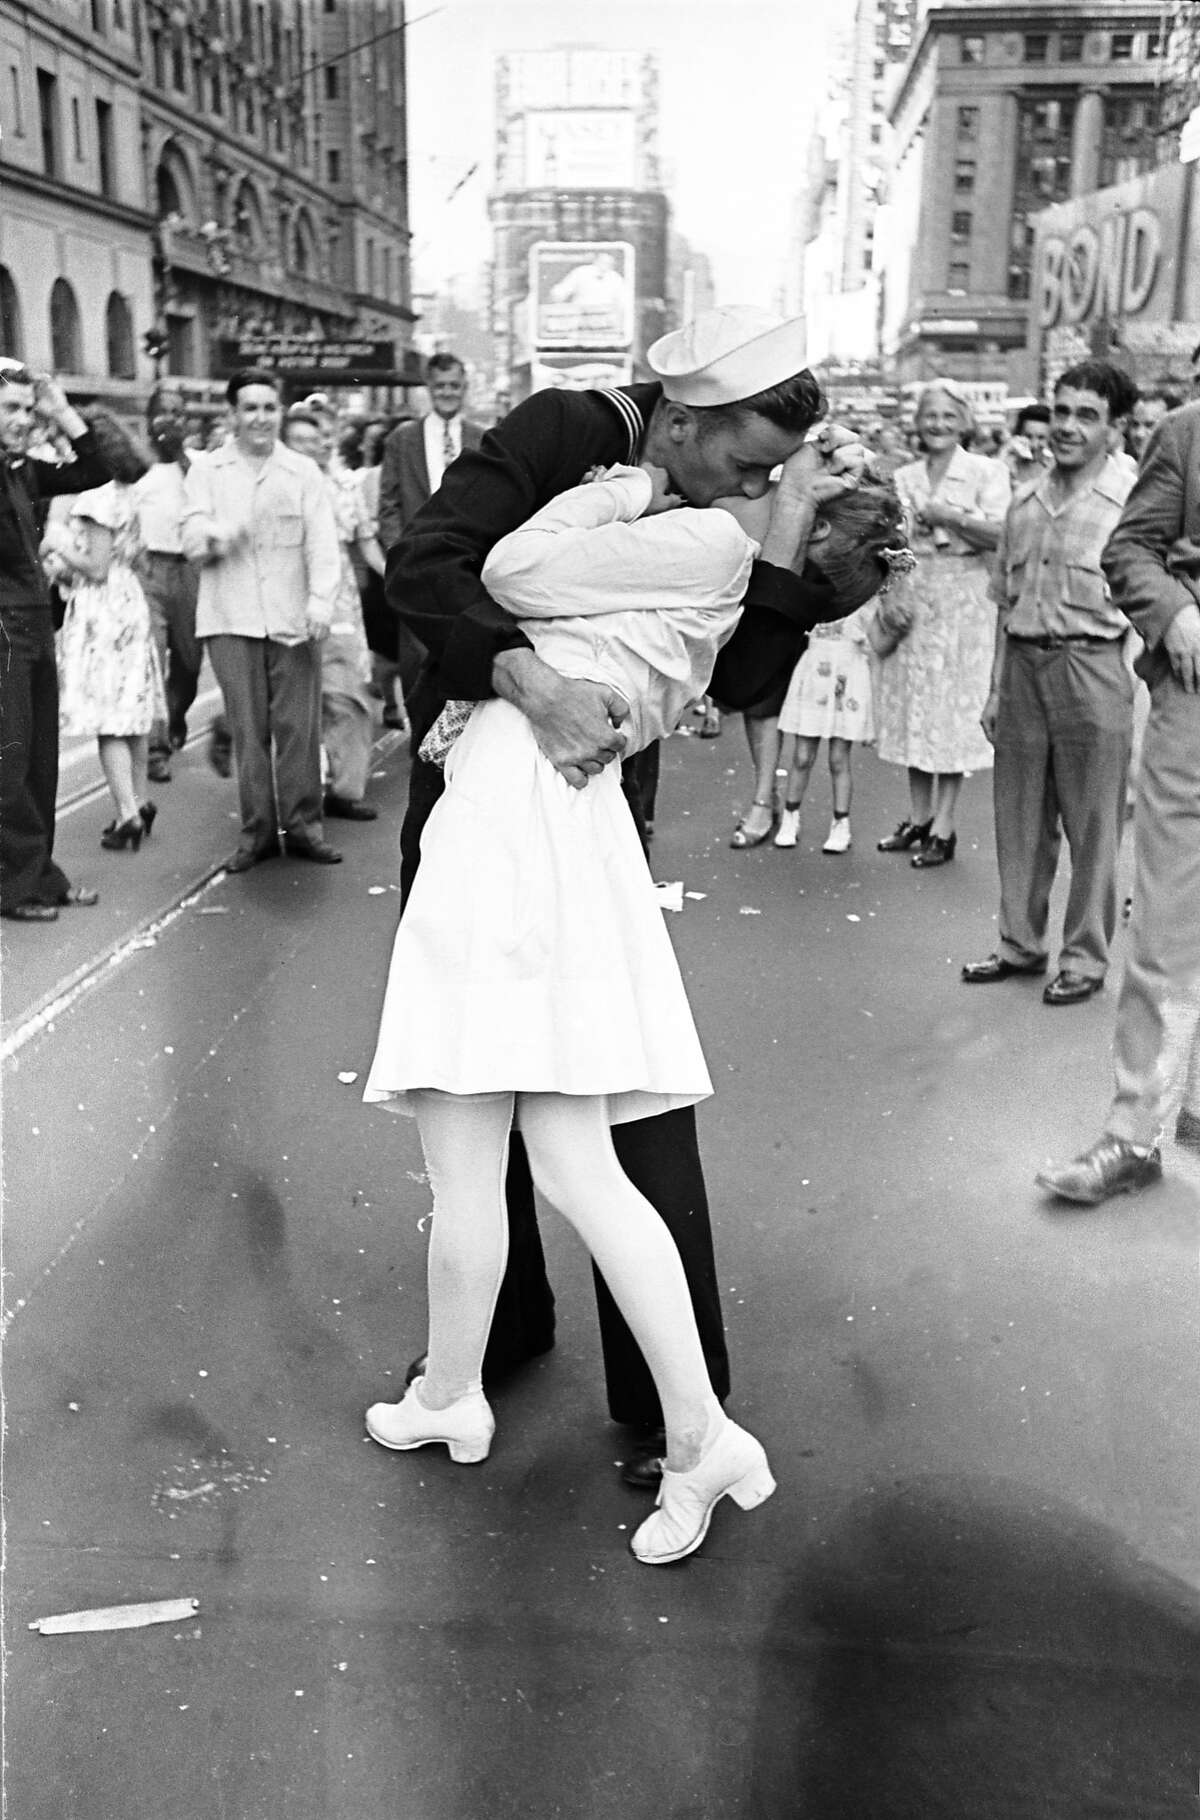 As pedestrians watch, an American sailor passionately kisses a white-uniformed nurse in Times Square to celebrate the long awaited-victory over Japan. August 14, 1945. This is an outtake that is not the iconic image for which Eisenstaedt is widely know. (Photo by Alfred Eisenstaedt/Time & Life Pictures/Getty Images)